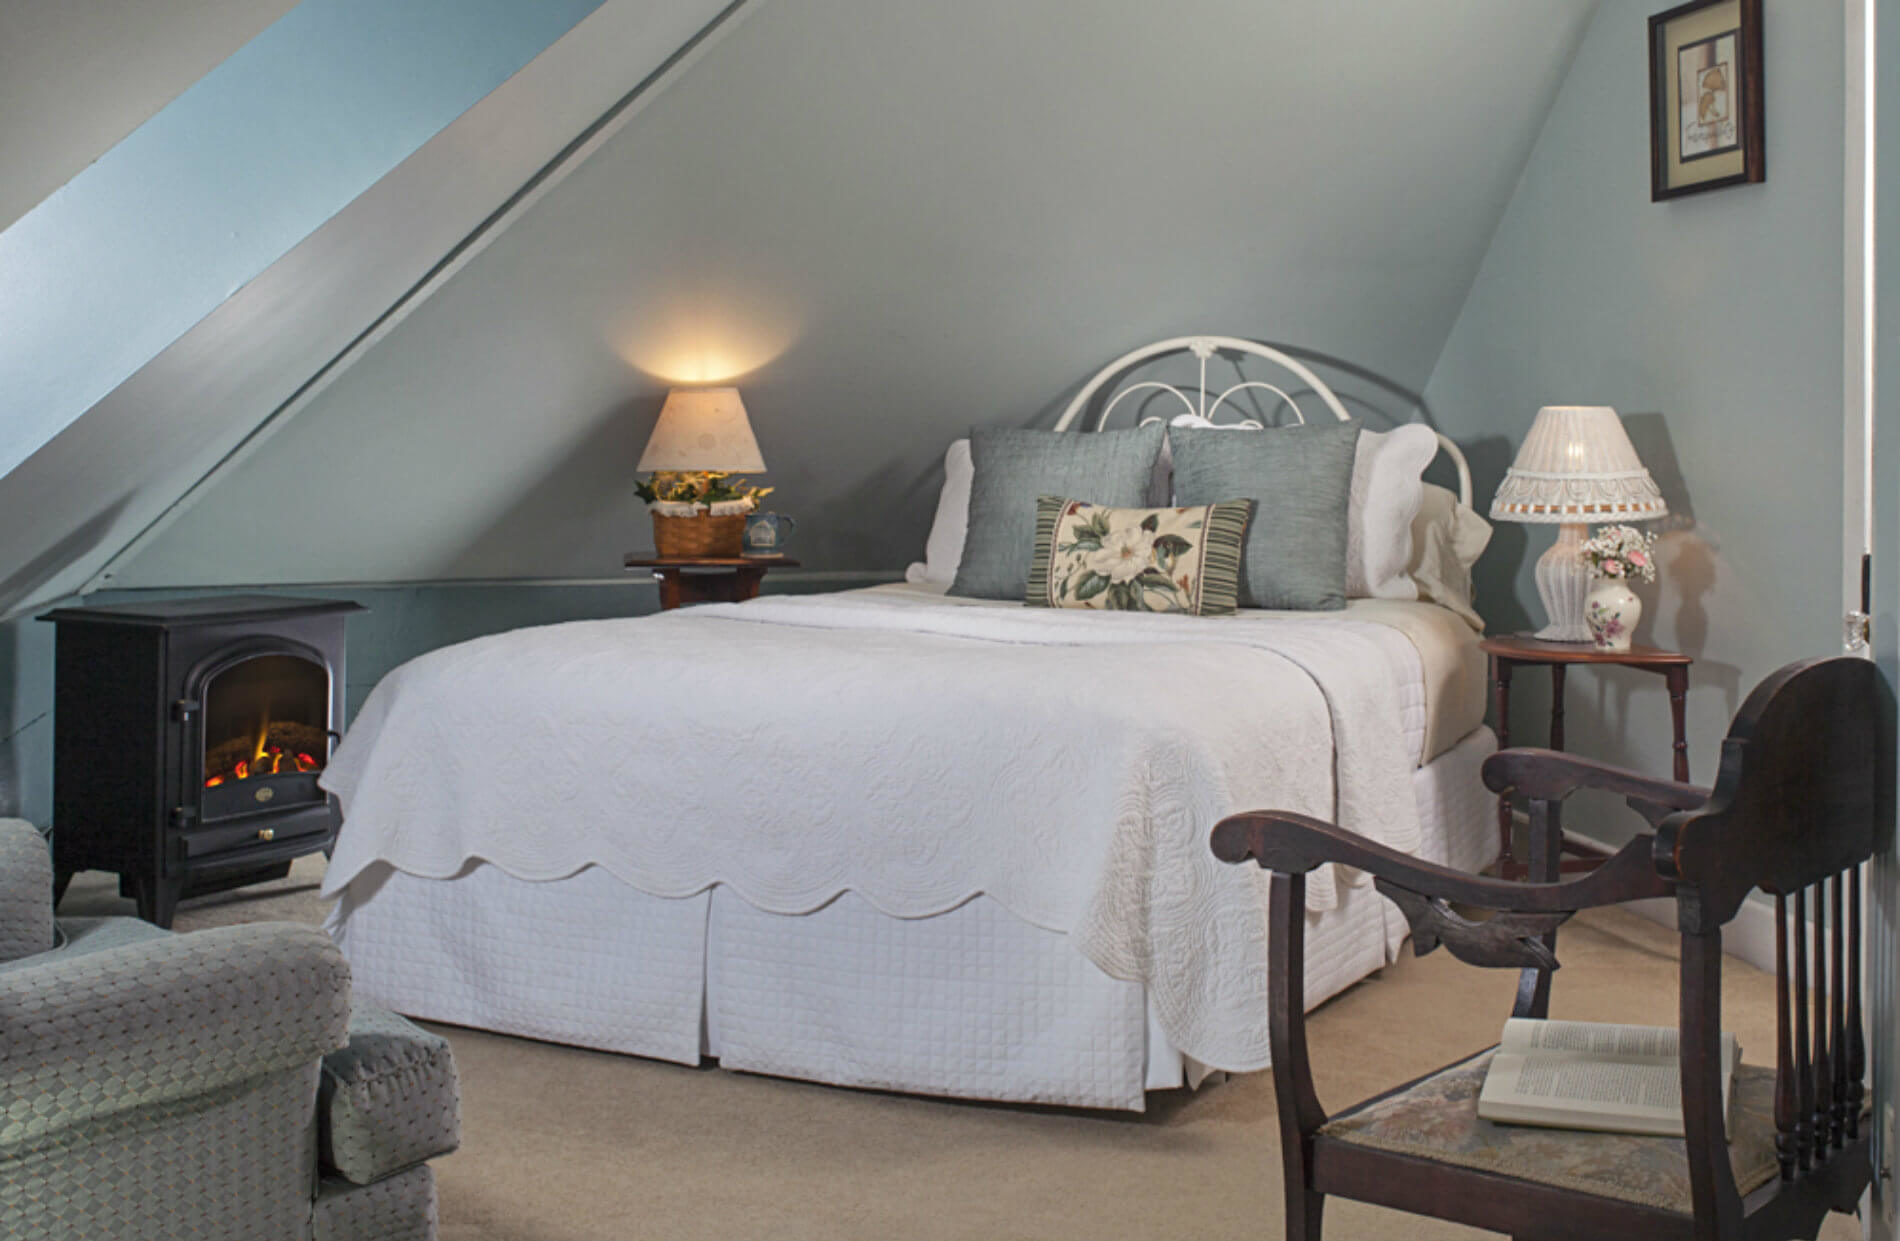 Large bed with white coverlet in gabled ceiling room with lamp